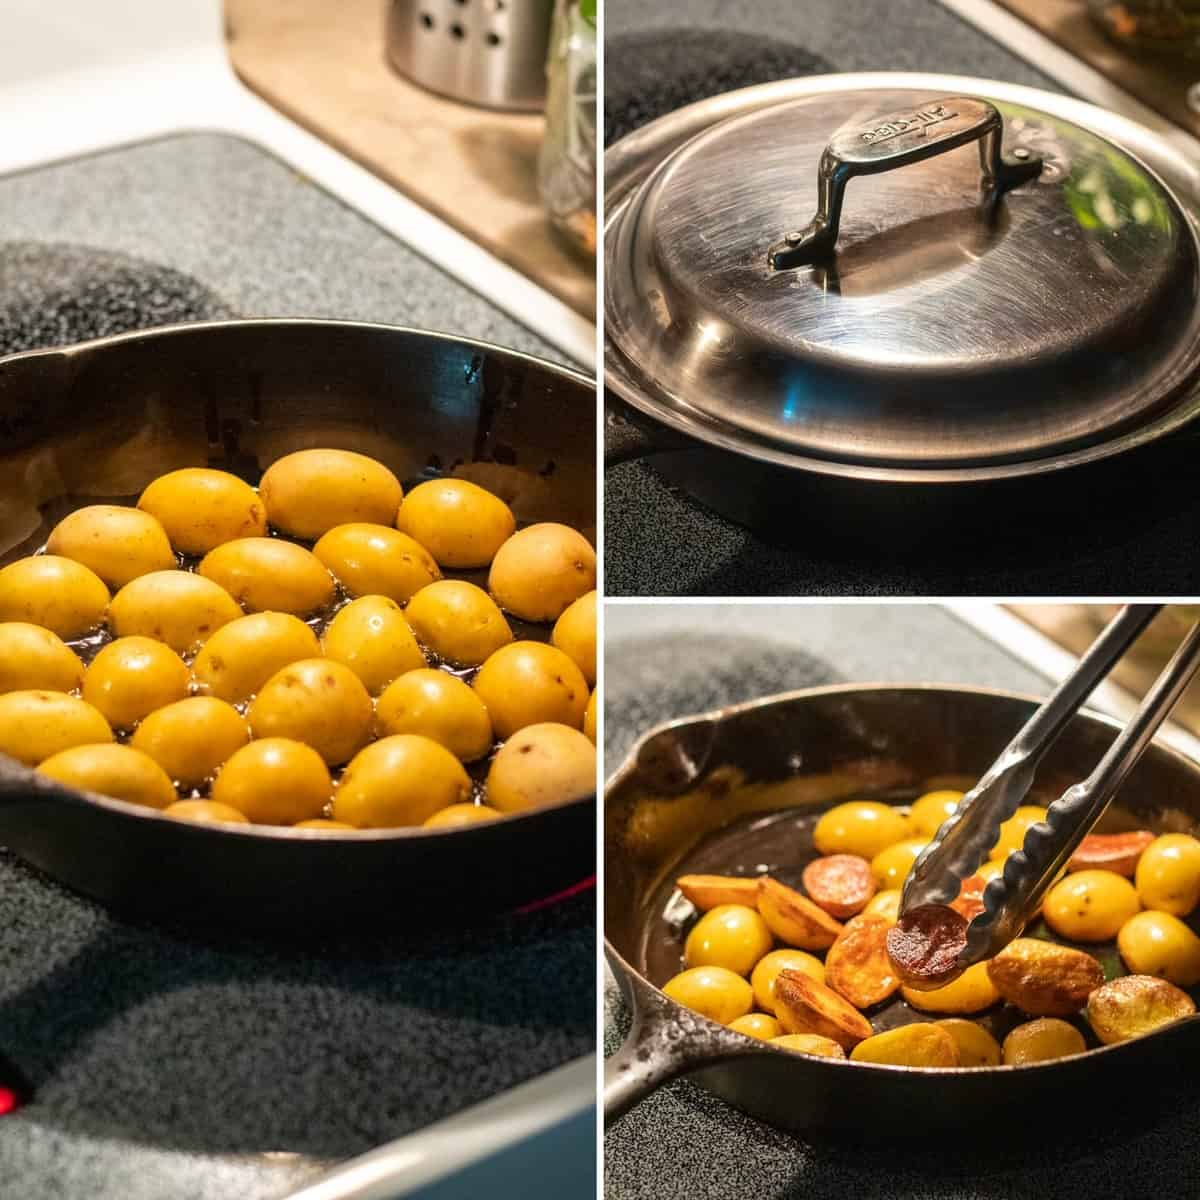 Three photo collage showing how to brown the potatoes in the skillet with a lid.